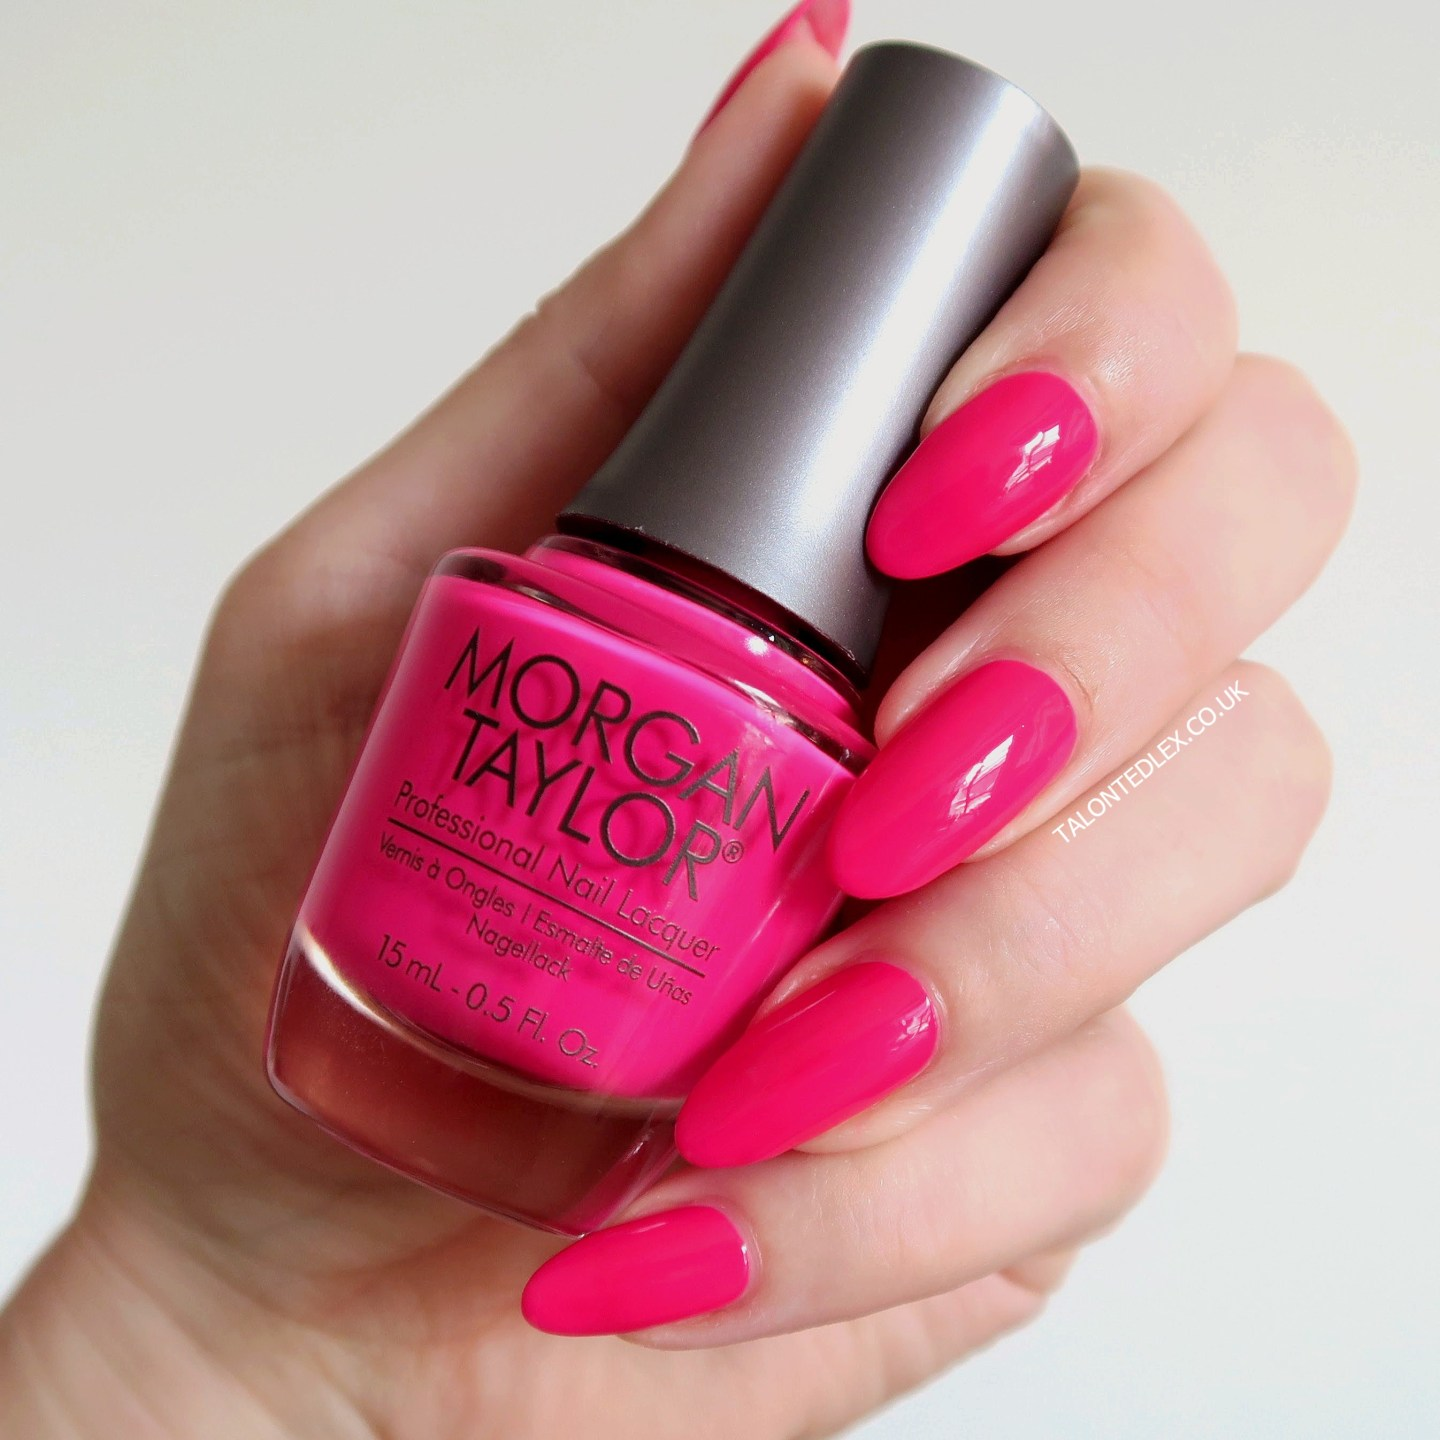 Repin and click to see the full Morgan Taylor Rocketman collection, including 'It's The Shades' - a bright pink neon polish. New Morgan Taylor nail polish range. #talontedlex #morgantaylor #pinknails